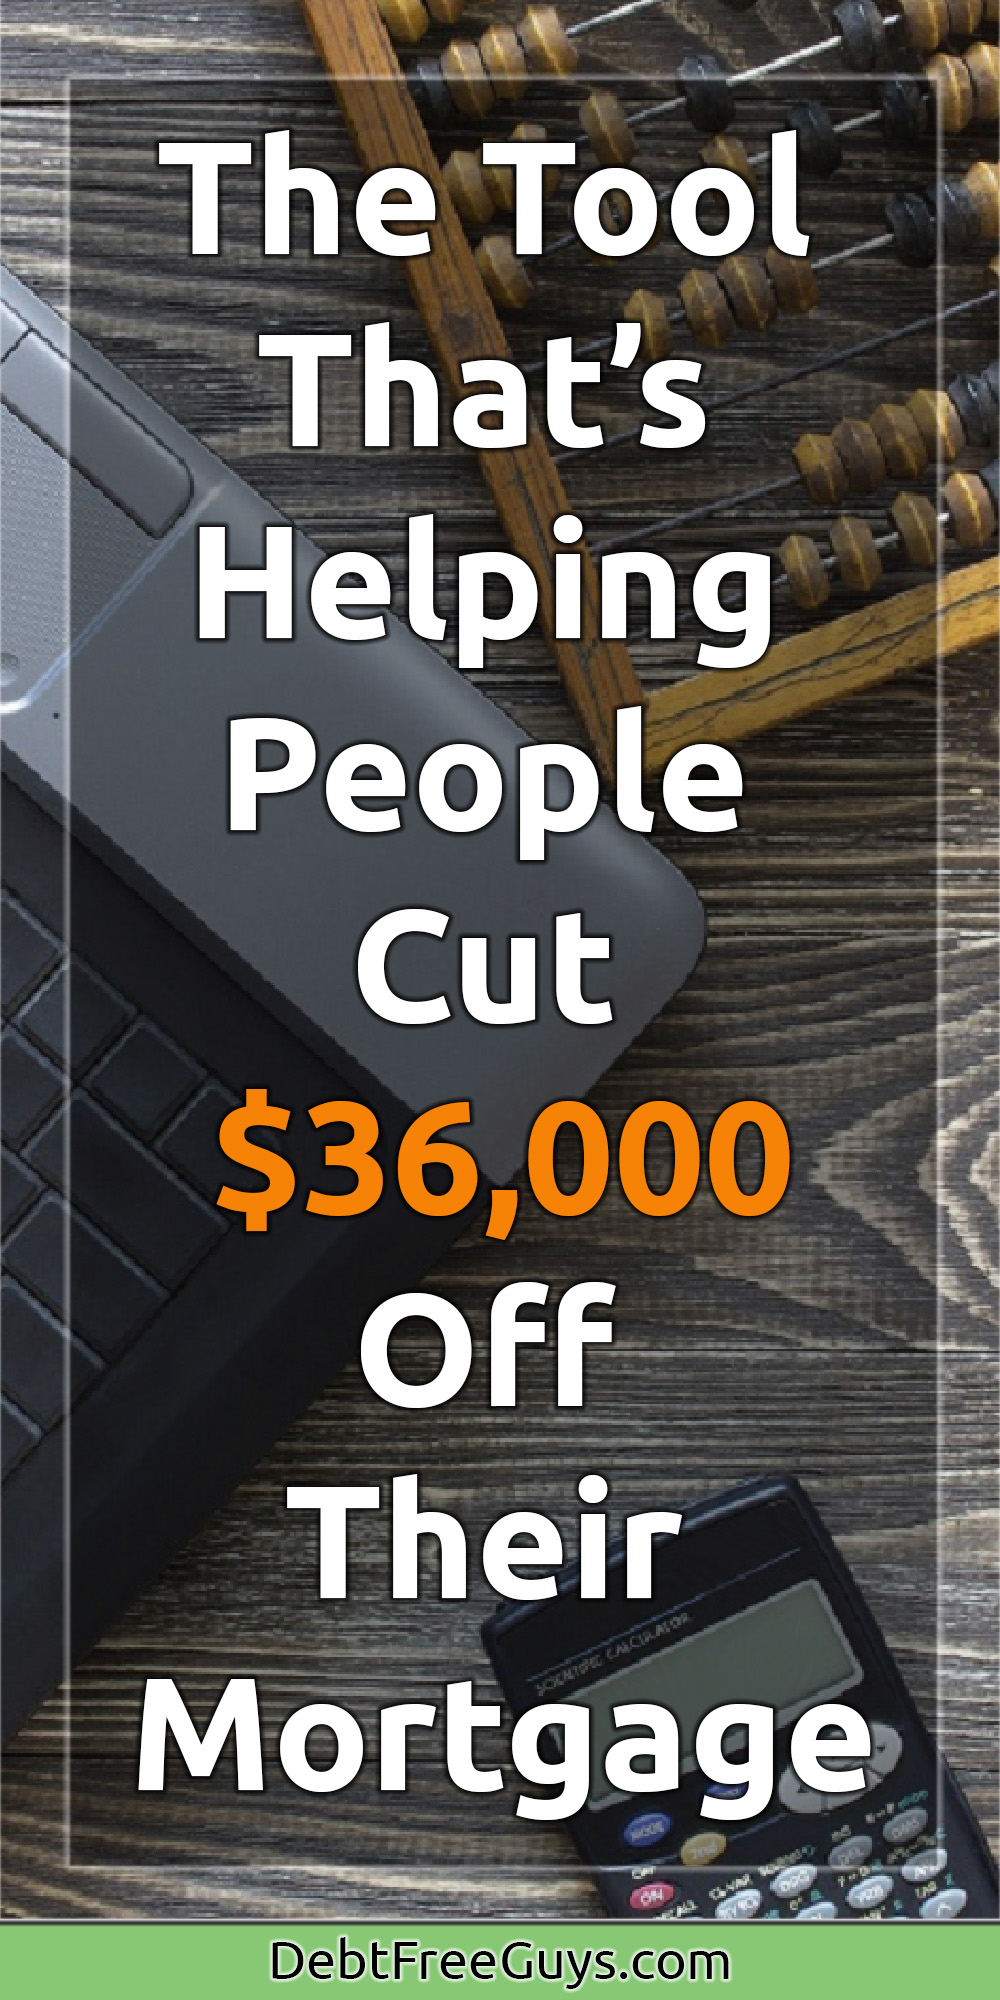 We struggled to pay off our debt. It was hard! Then we came up with tools and systems like this, that helped us pay off $51,000 in 2.5 years. That's why we had to share this and hope you do, too!